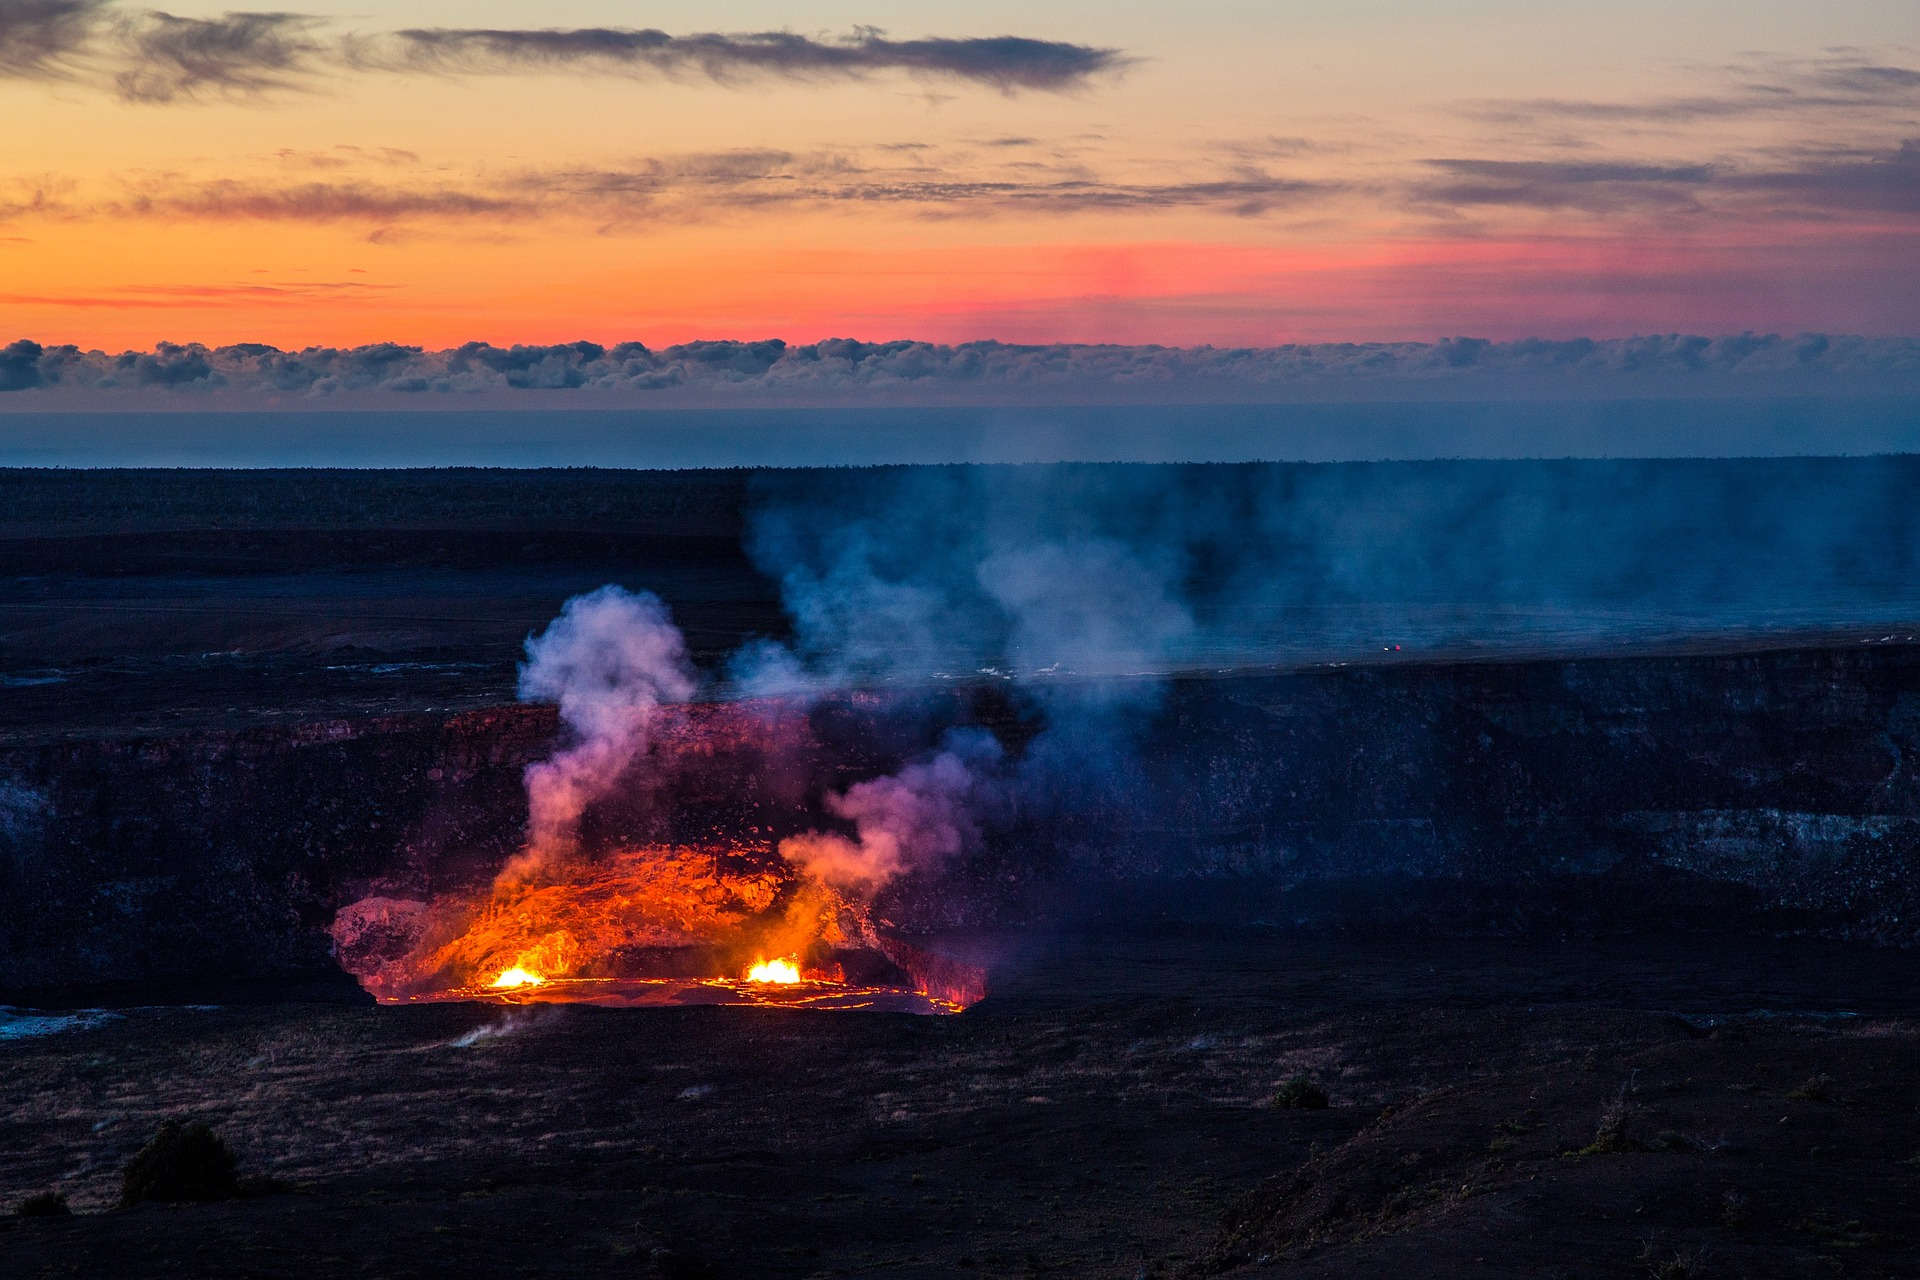 Volacanic eruption on Hawaii Island at Halema'uma'u  PHOTO: Creative Commons